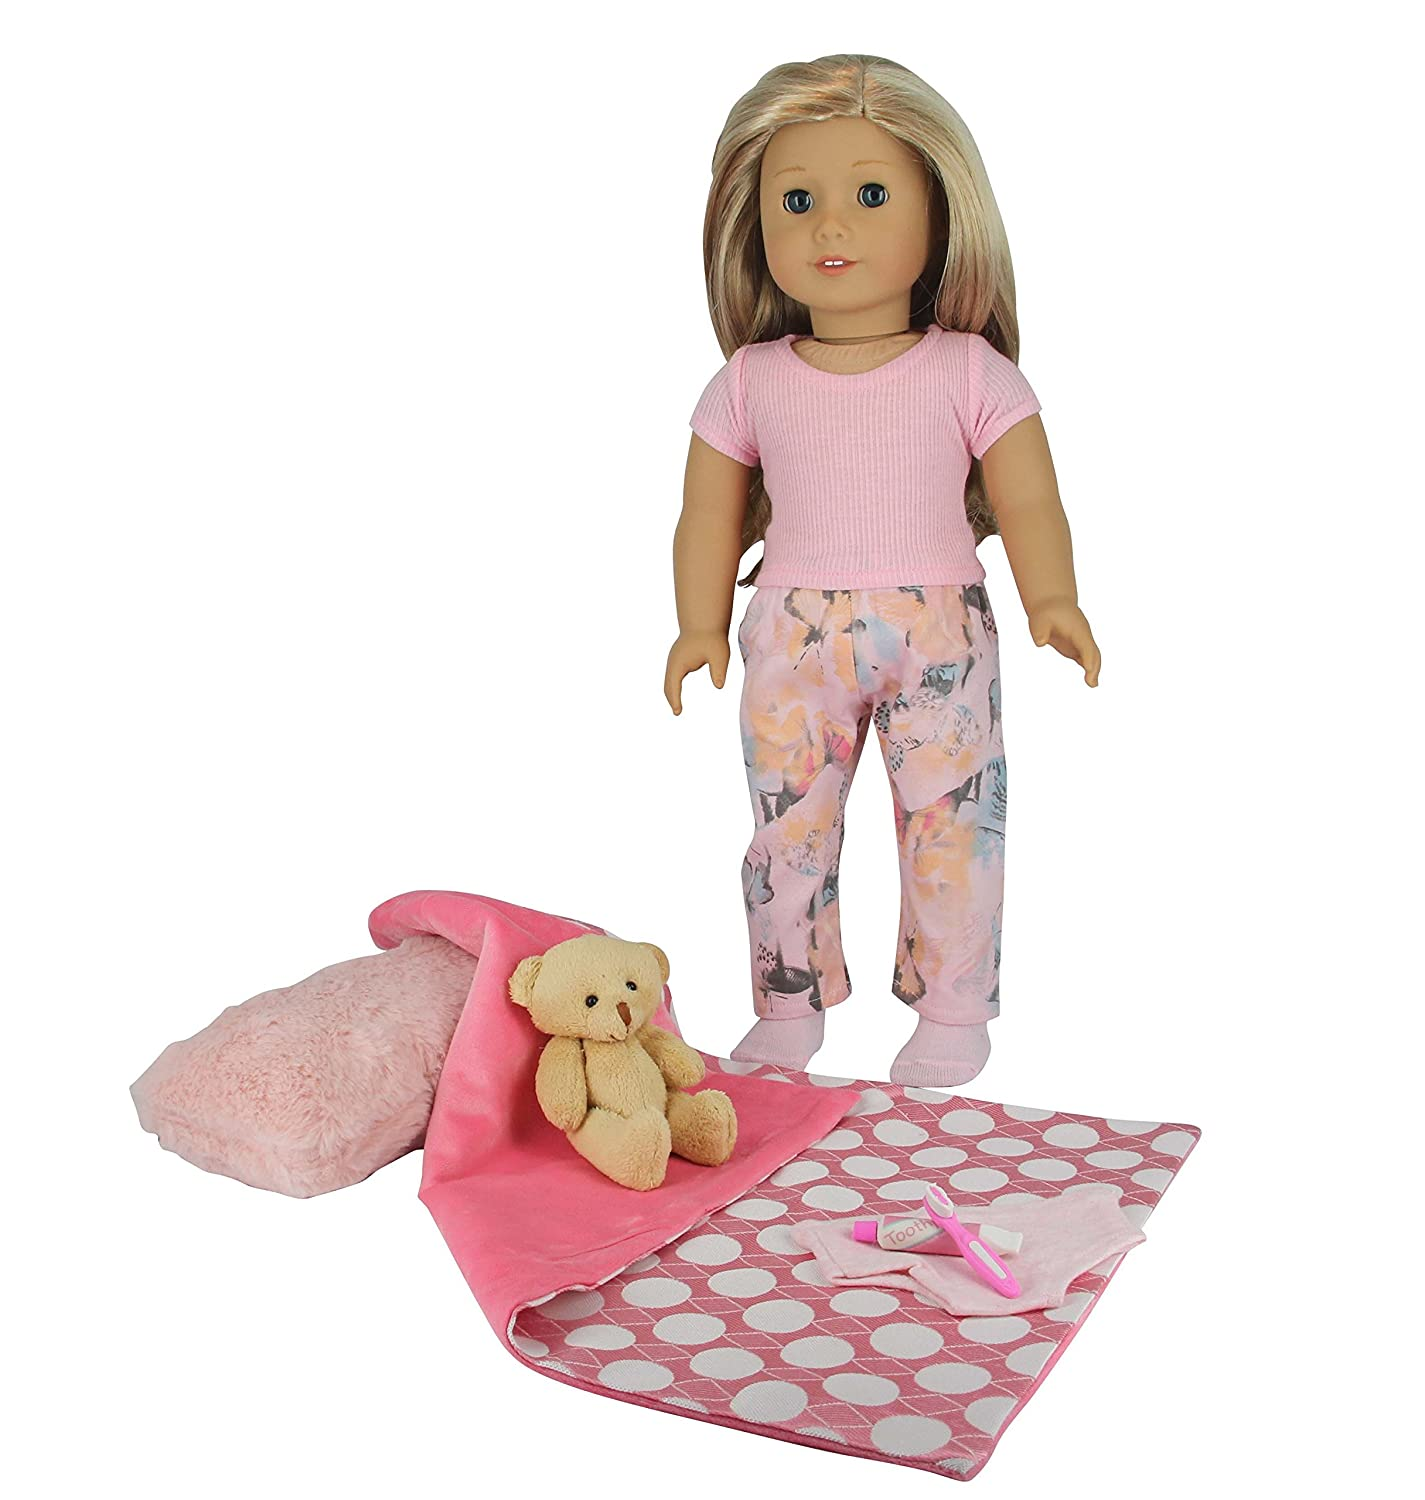 PZAS Toys American Girl Doll Clothes - Pajamas and Teddy Bear Set with Accessories - fits 18 Dolls